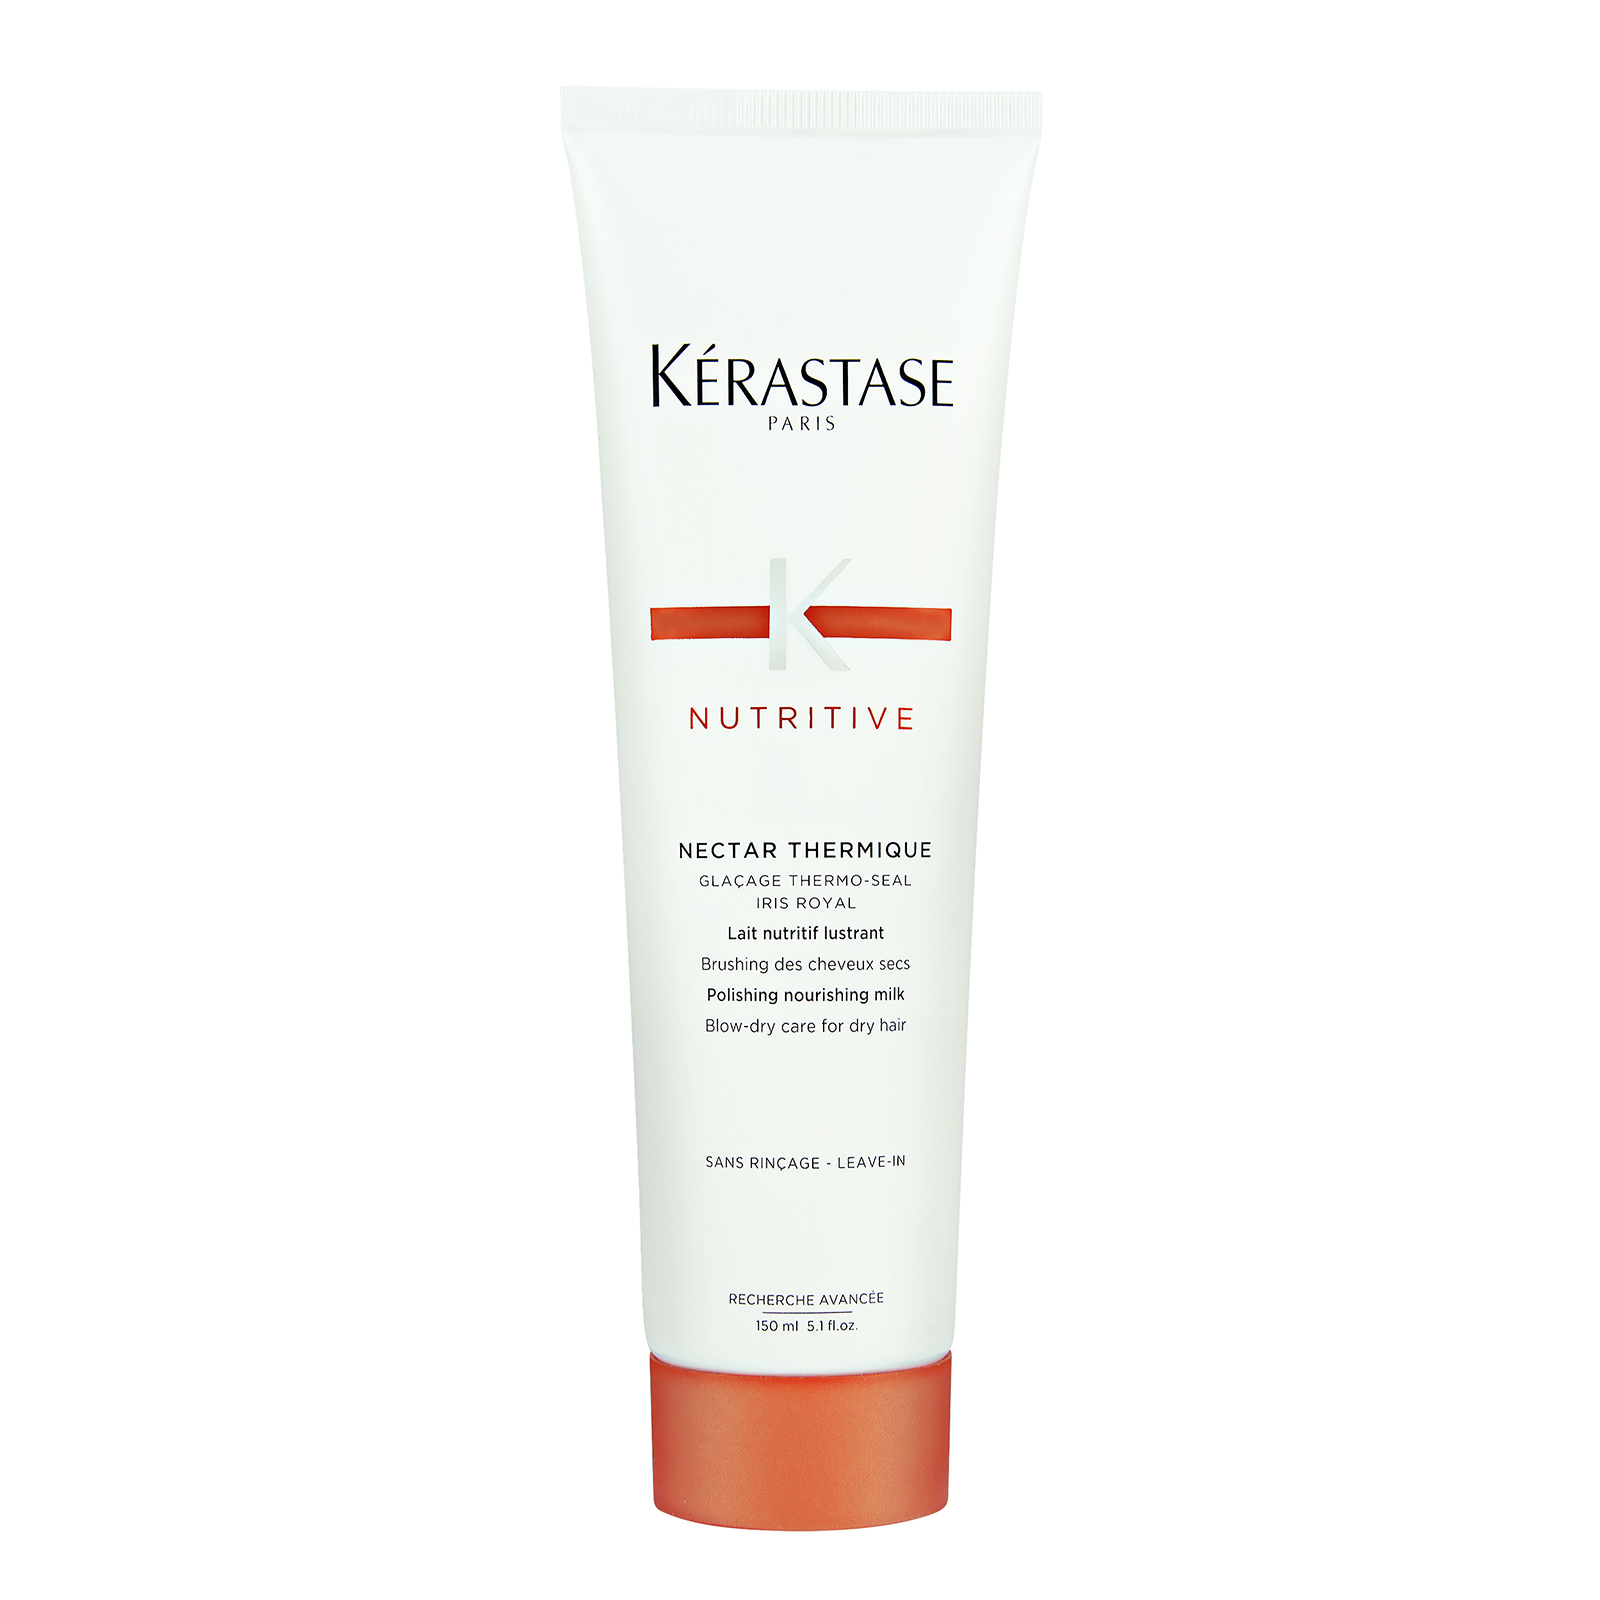 Kérastase Paris Nutritive  Nectar Thermique Polishing Nourishing Milk (Blow Dry Care for Dry Hair) 5.1oz, 150ml